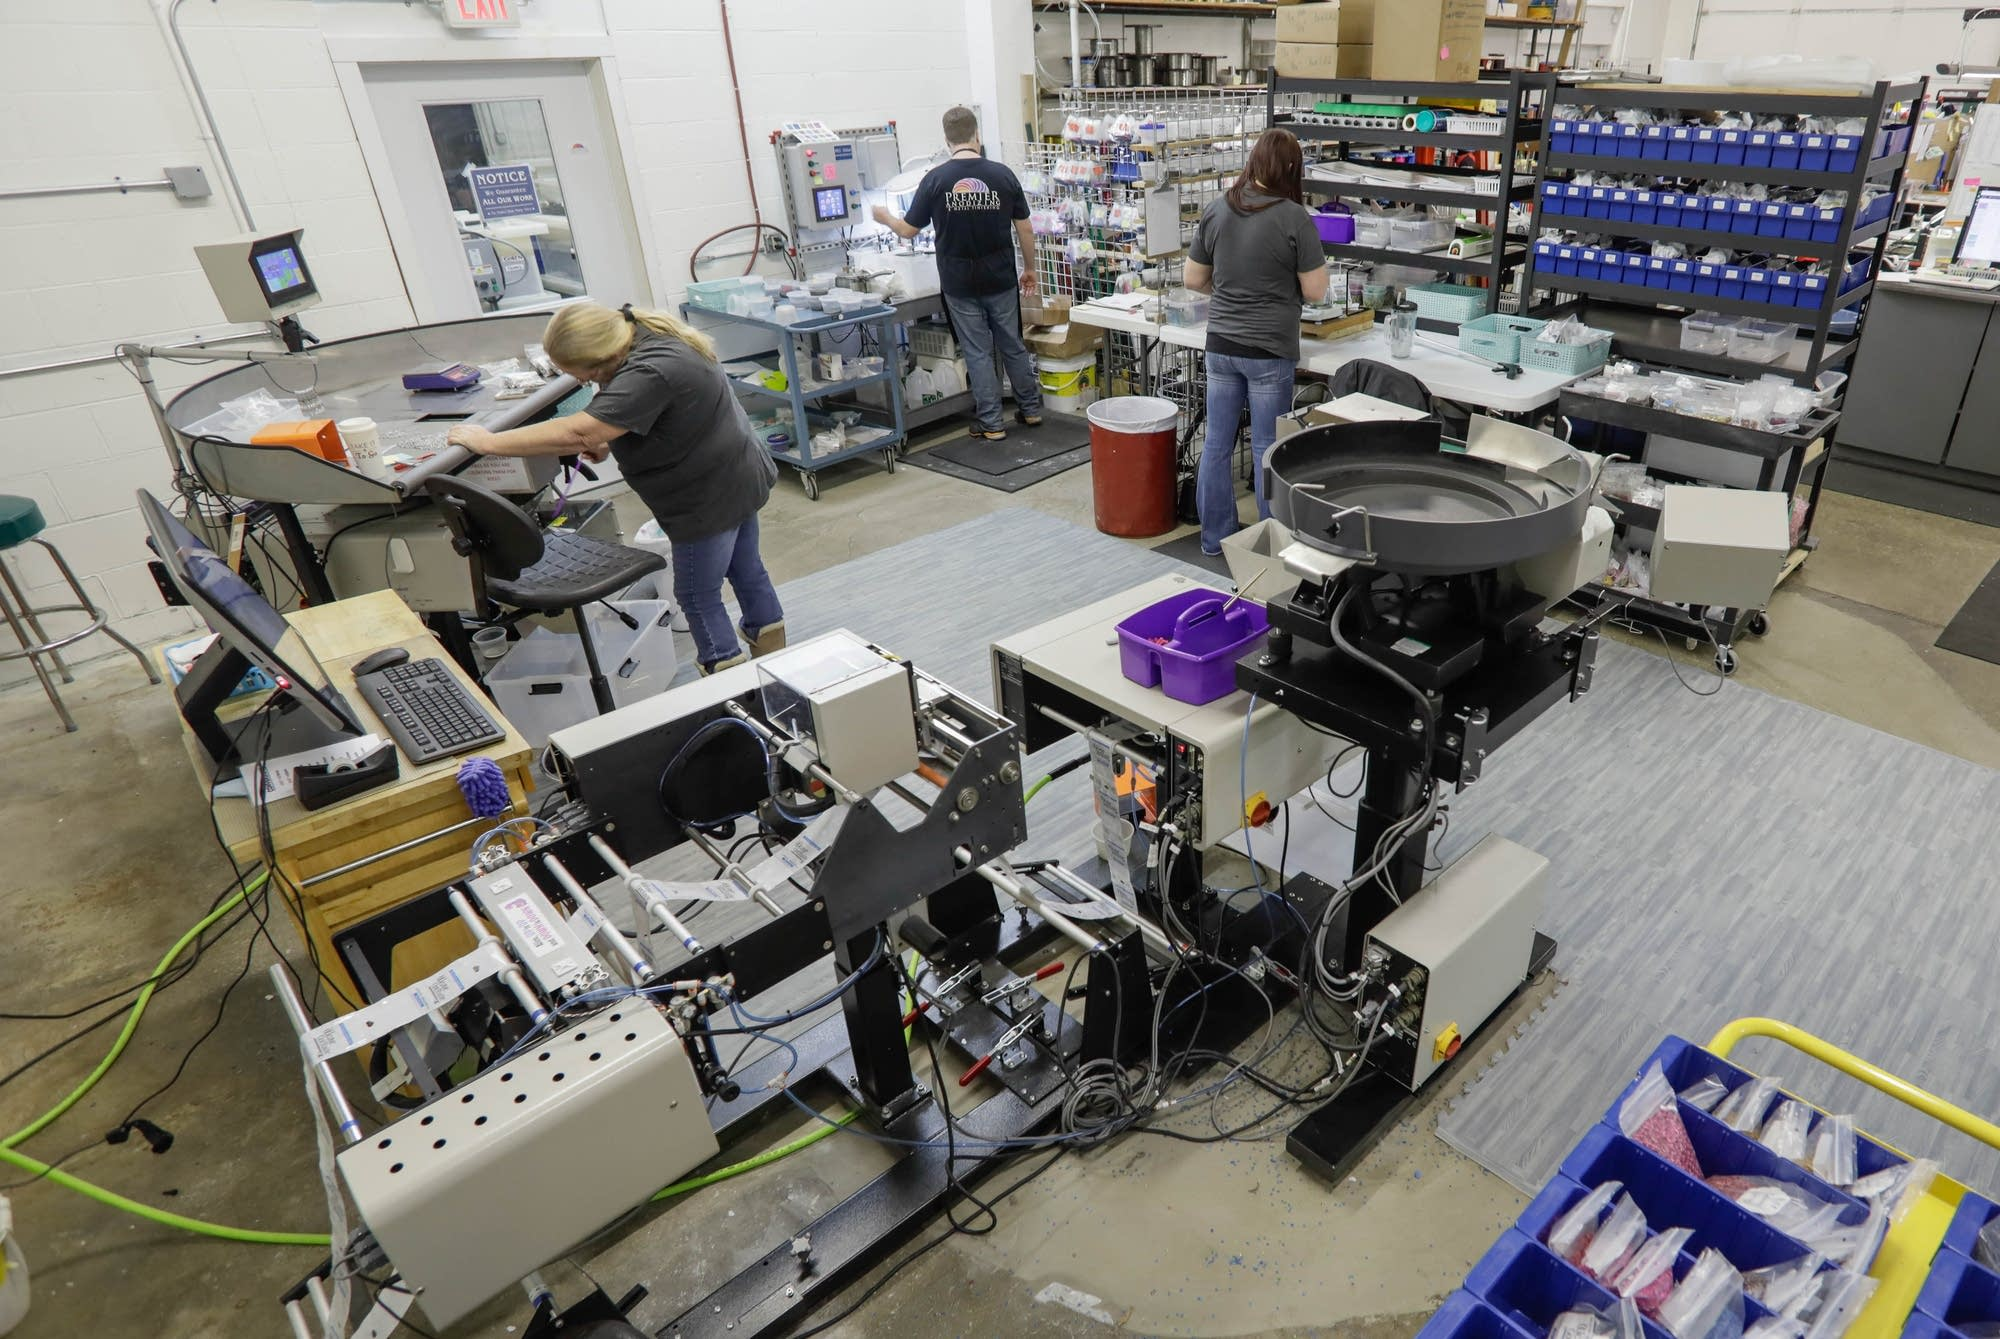 Employees work in the production area nicknamed Oz